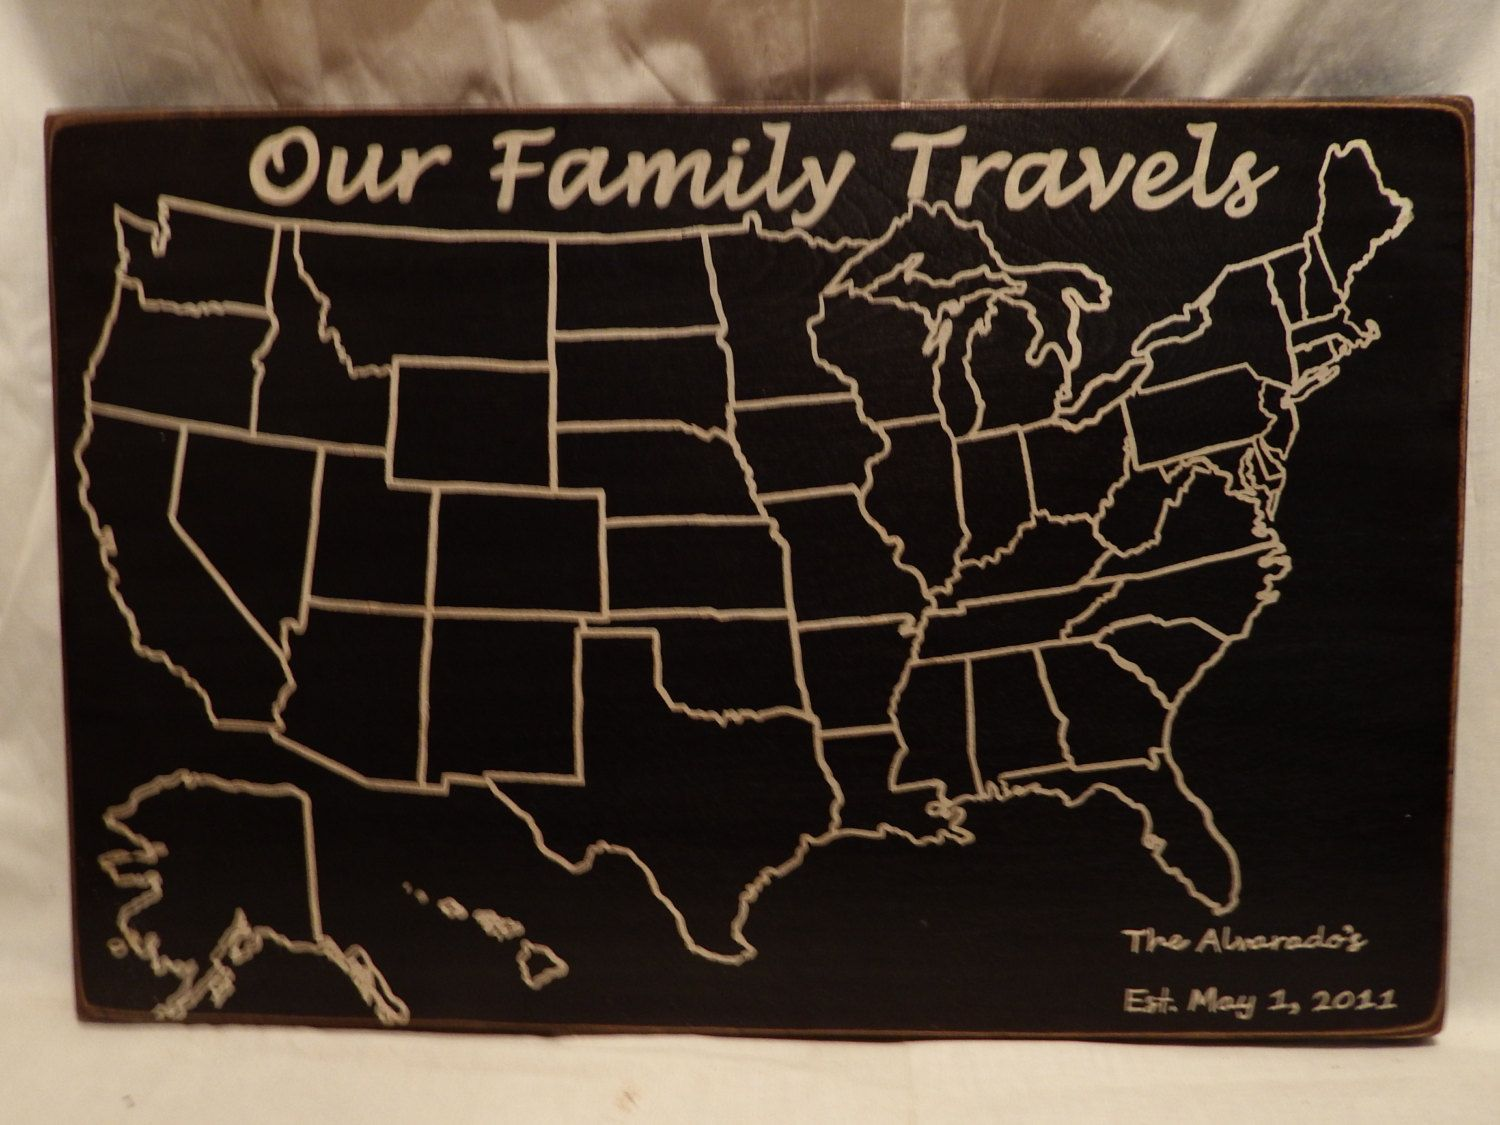 Travel Map Adventure Map Our Family Travels US Wood Map - Personalized us travel map